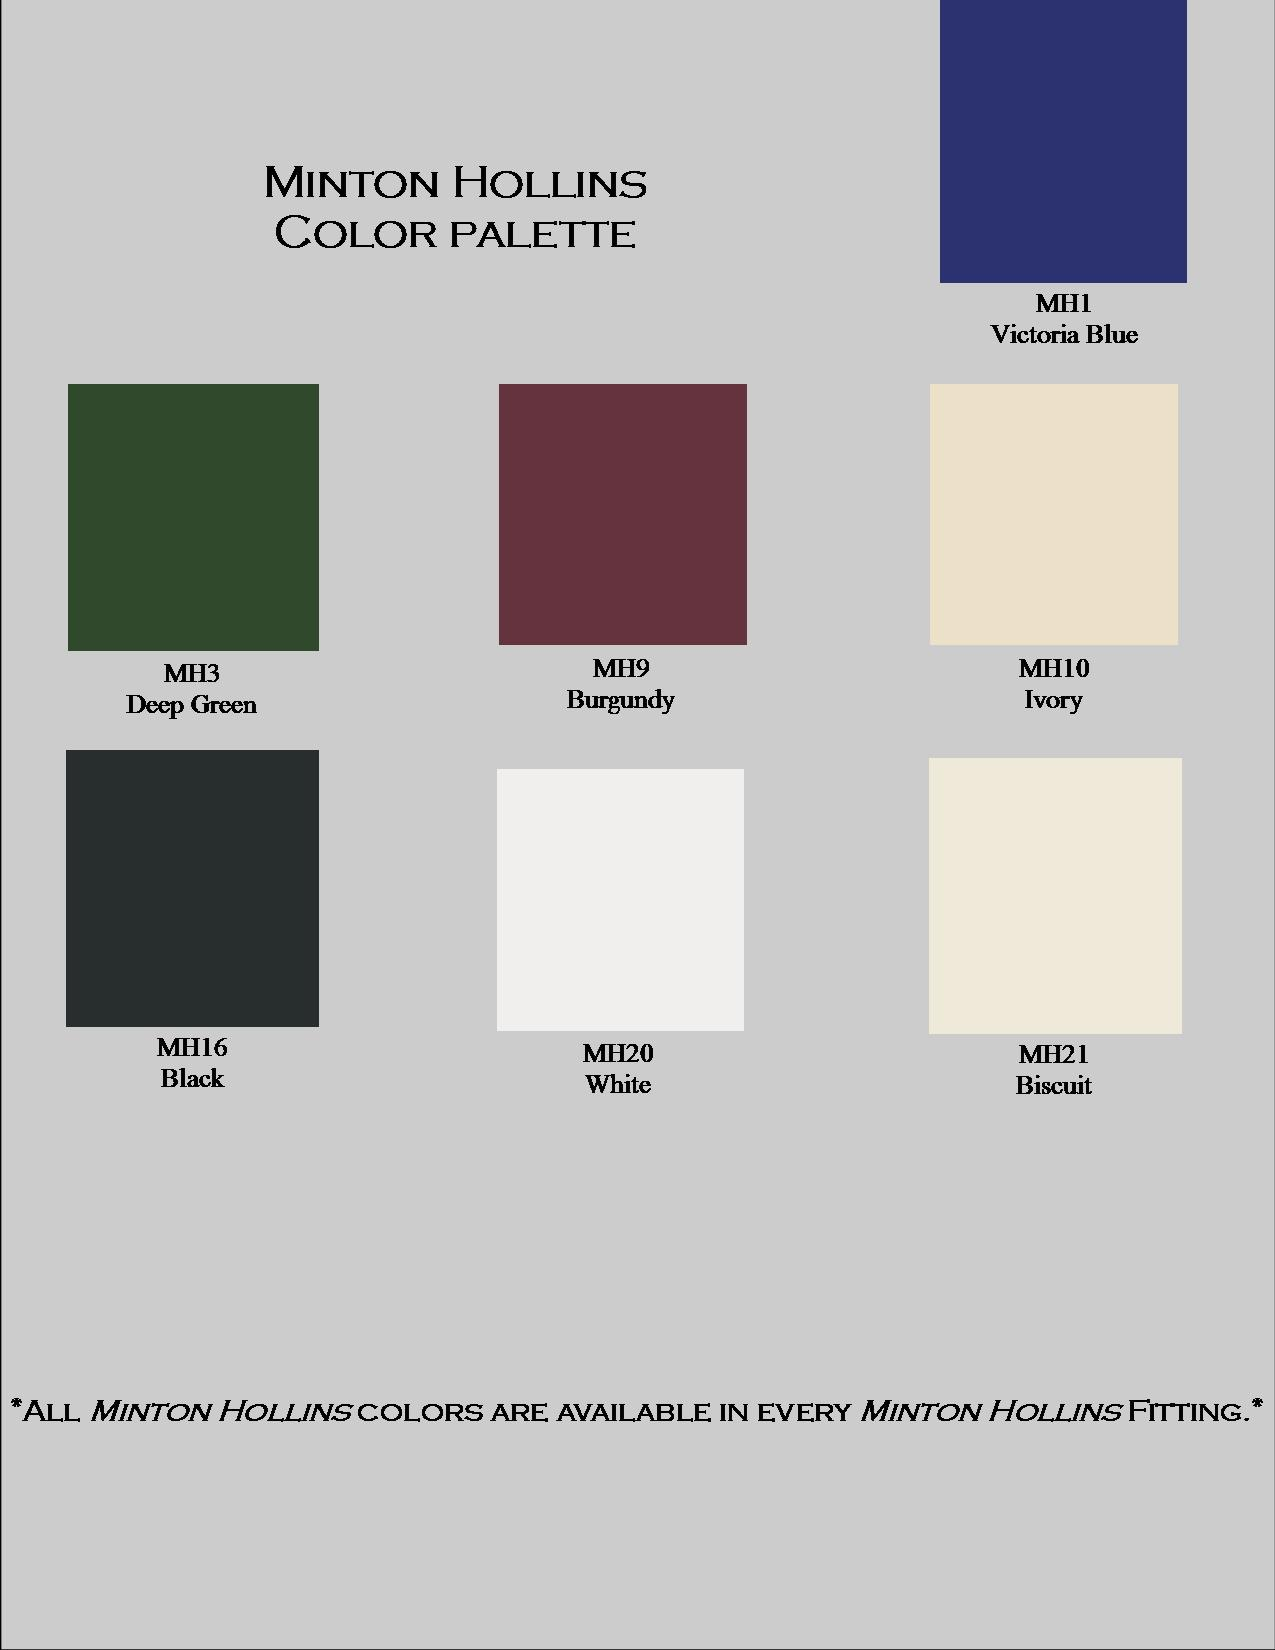 minton hollins colors amp fittings minton hollins products